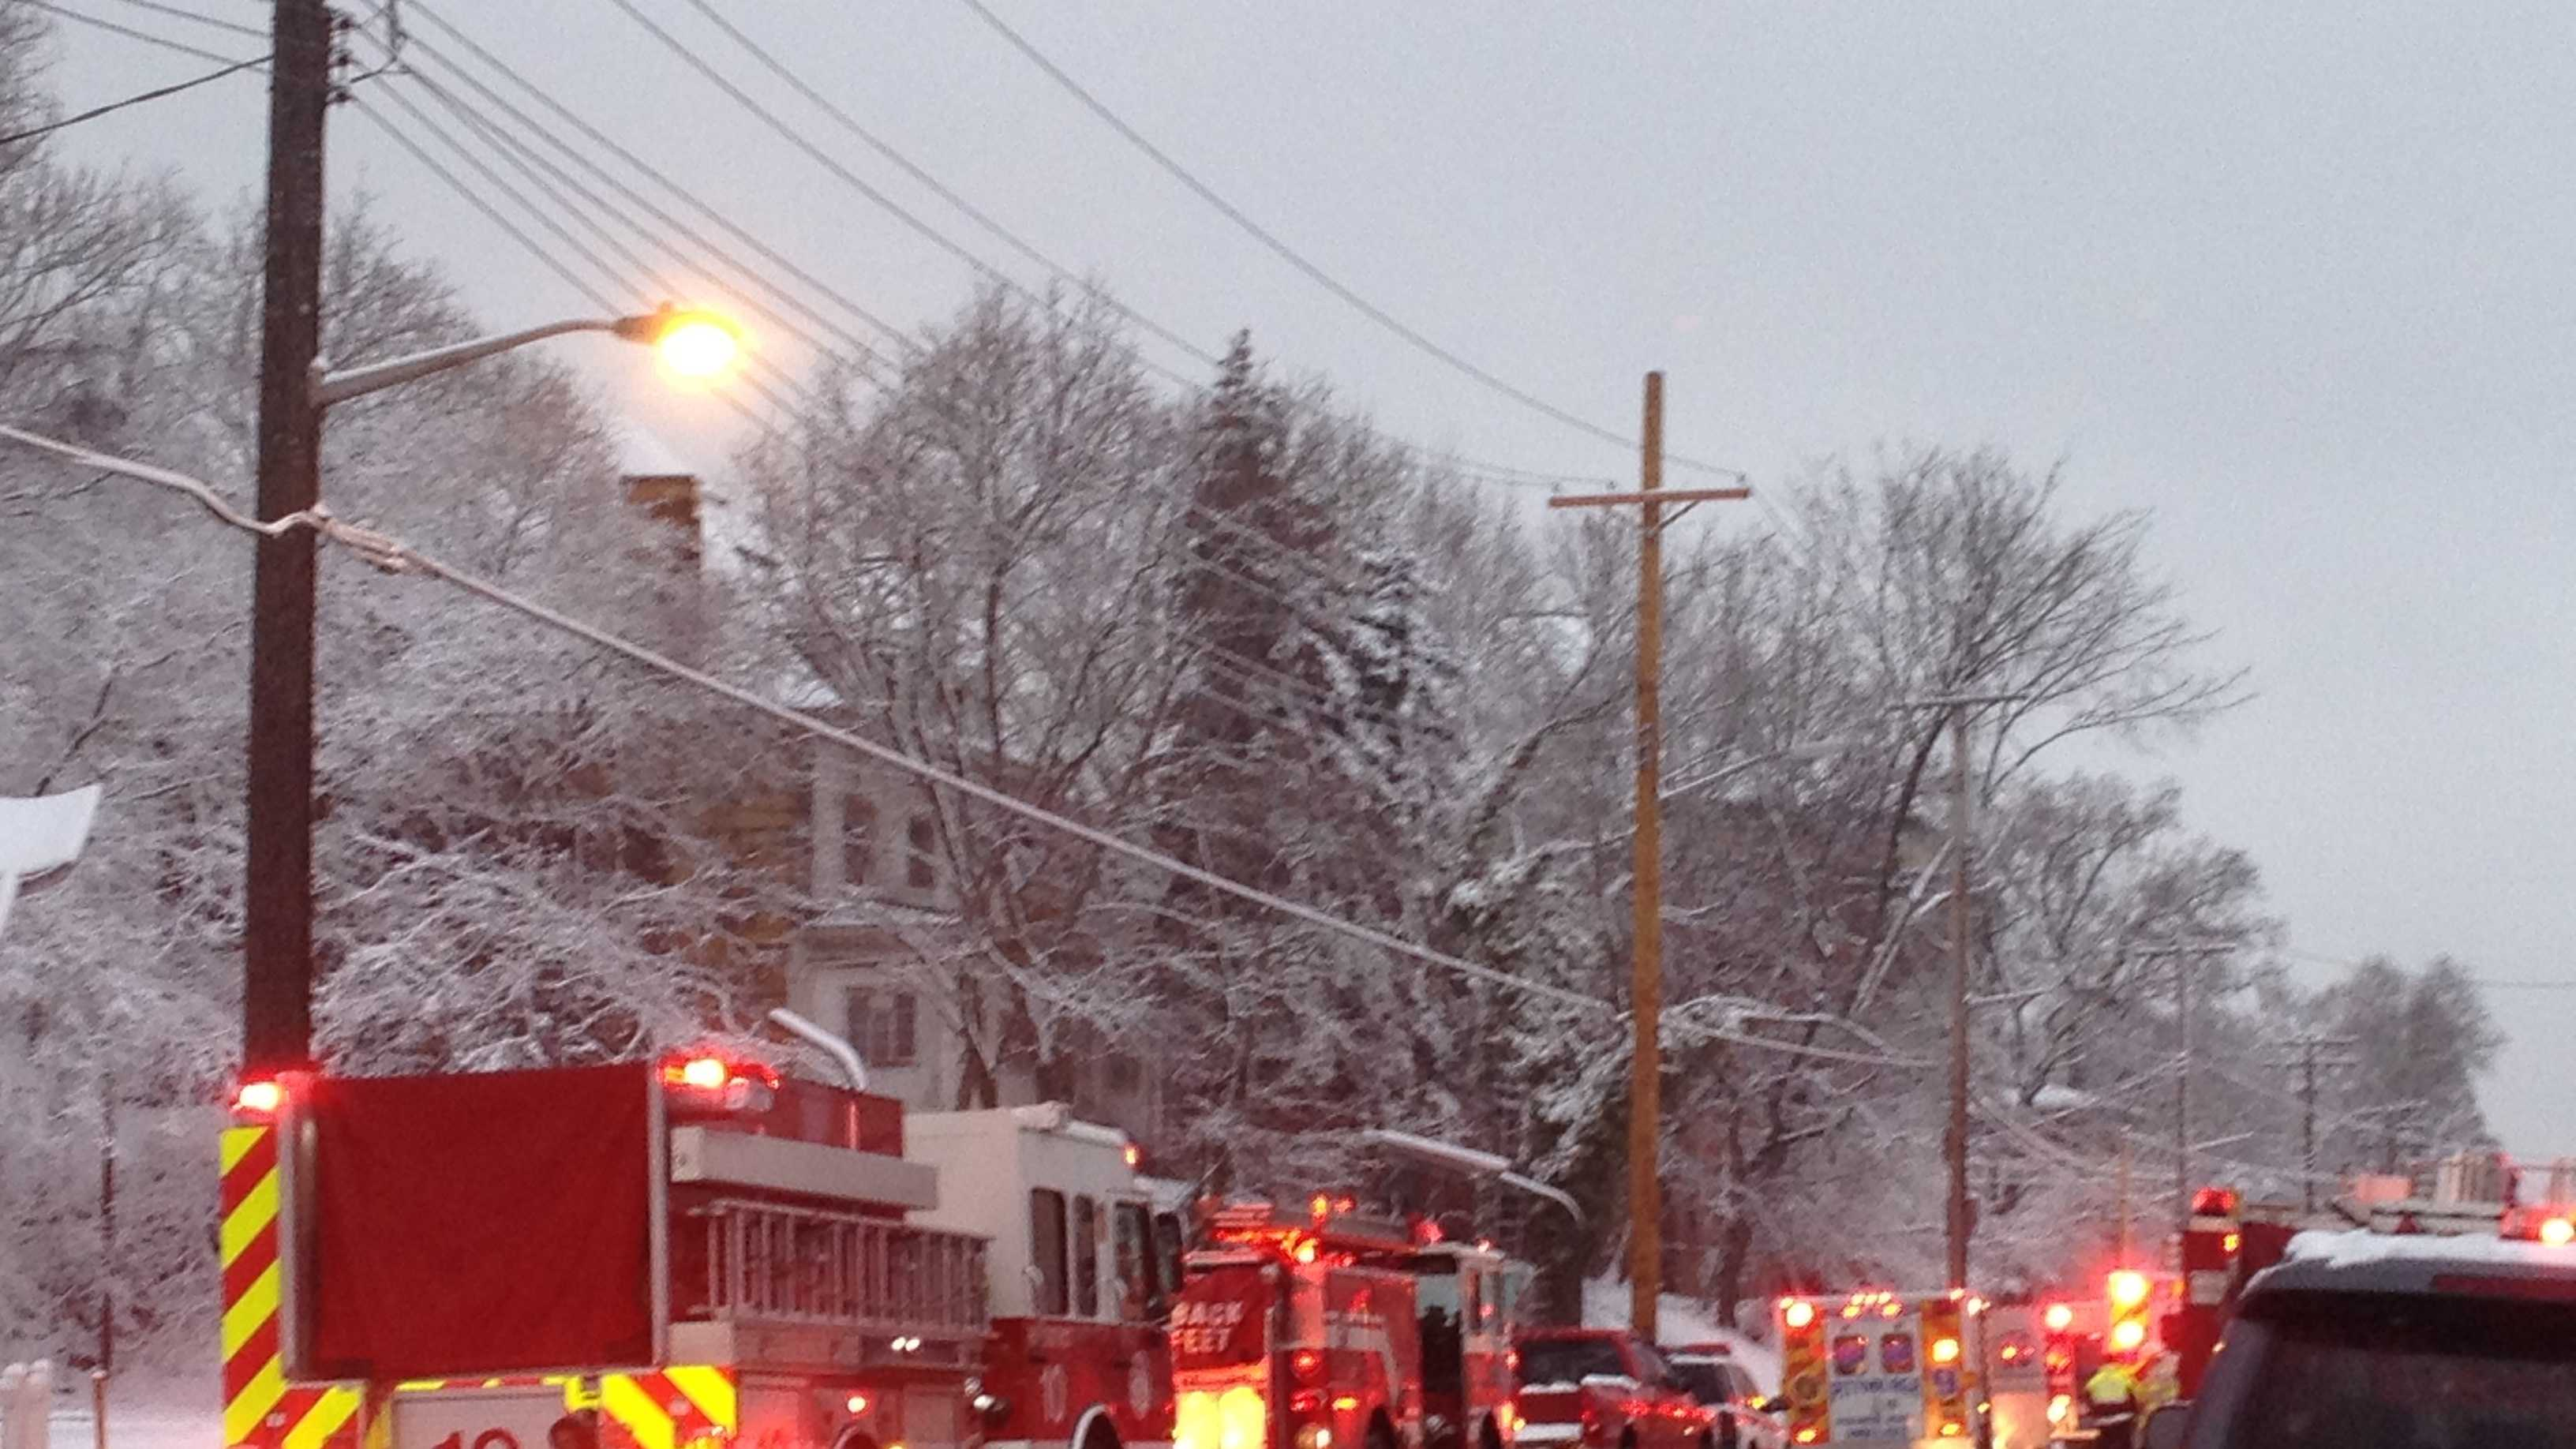 East Liberty fire 2